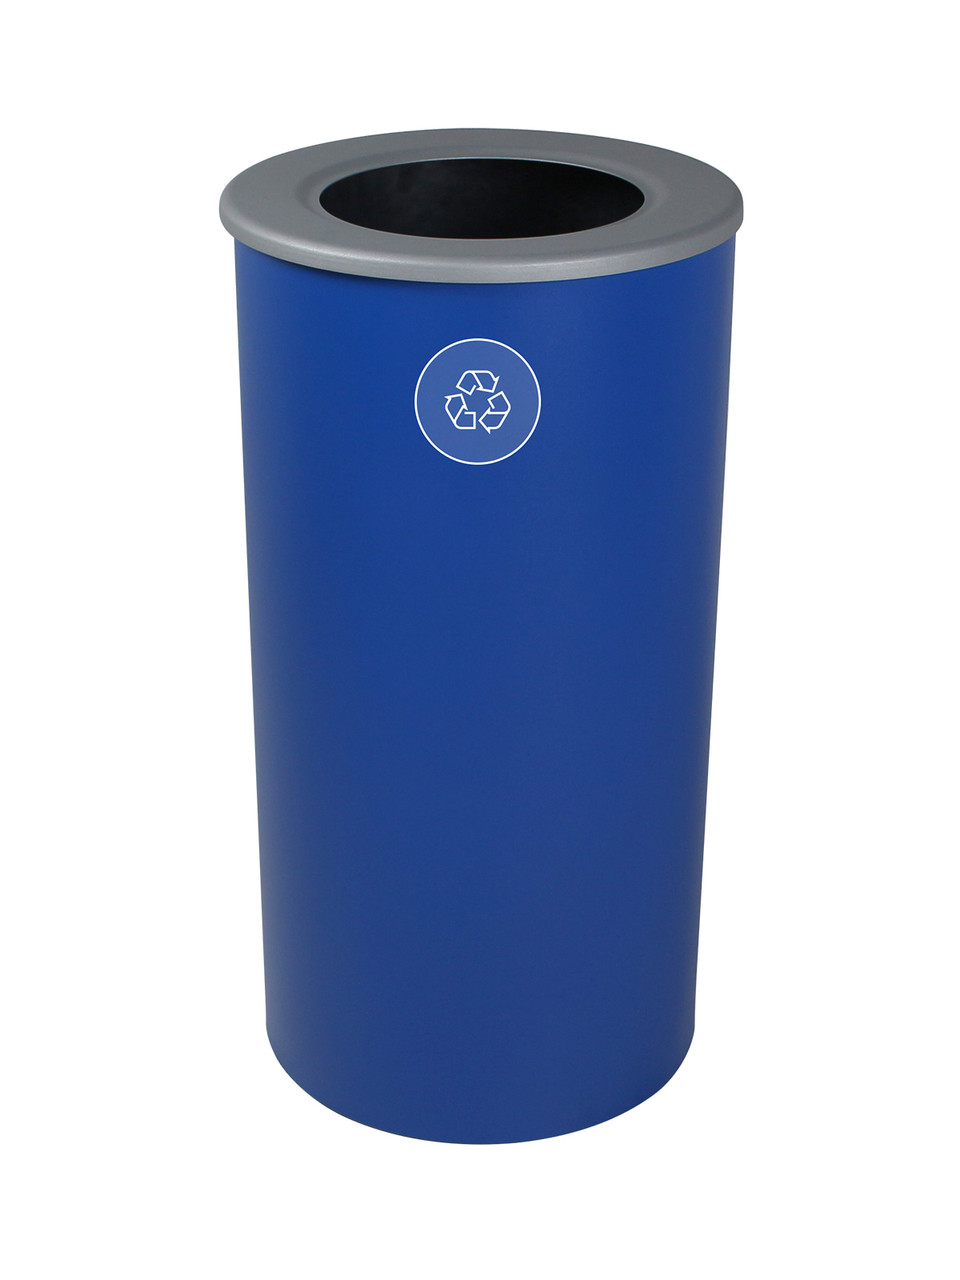 20 Gallon Steel Spectrum Round Recycle Bin Blue 8107125-4